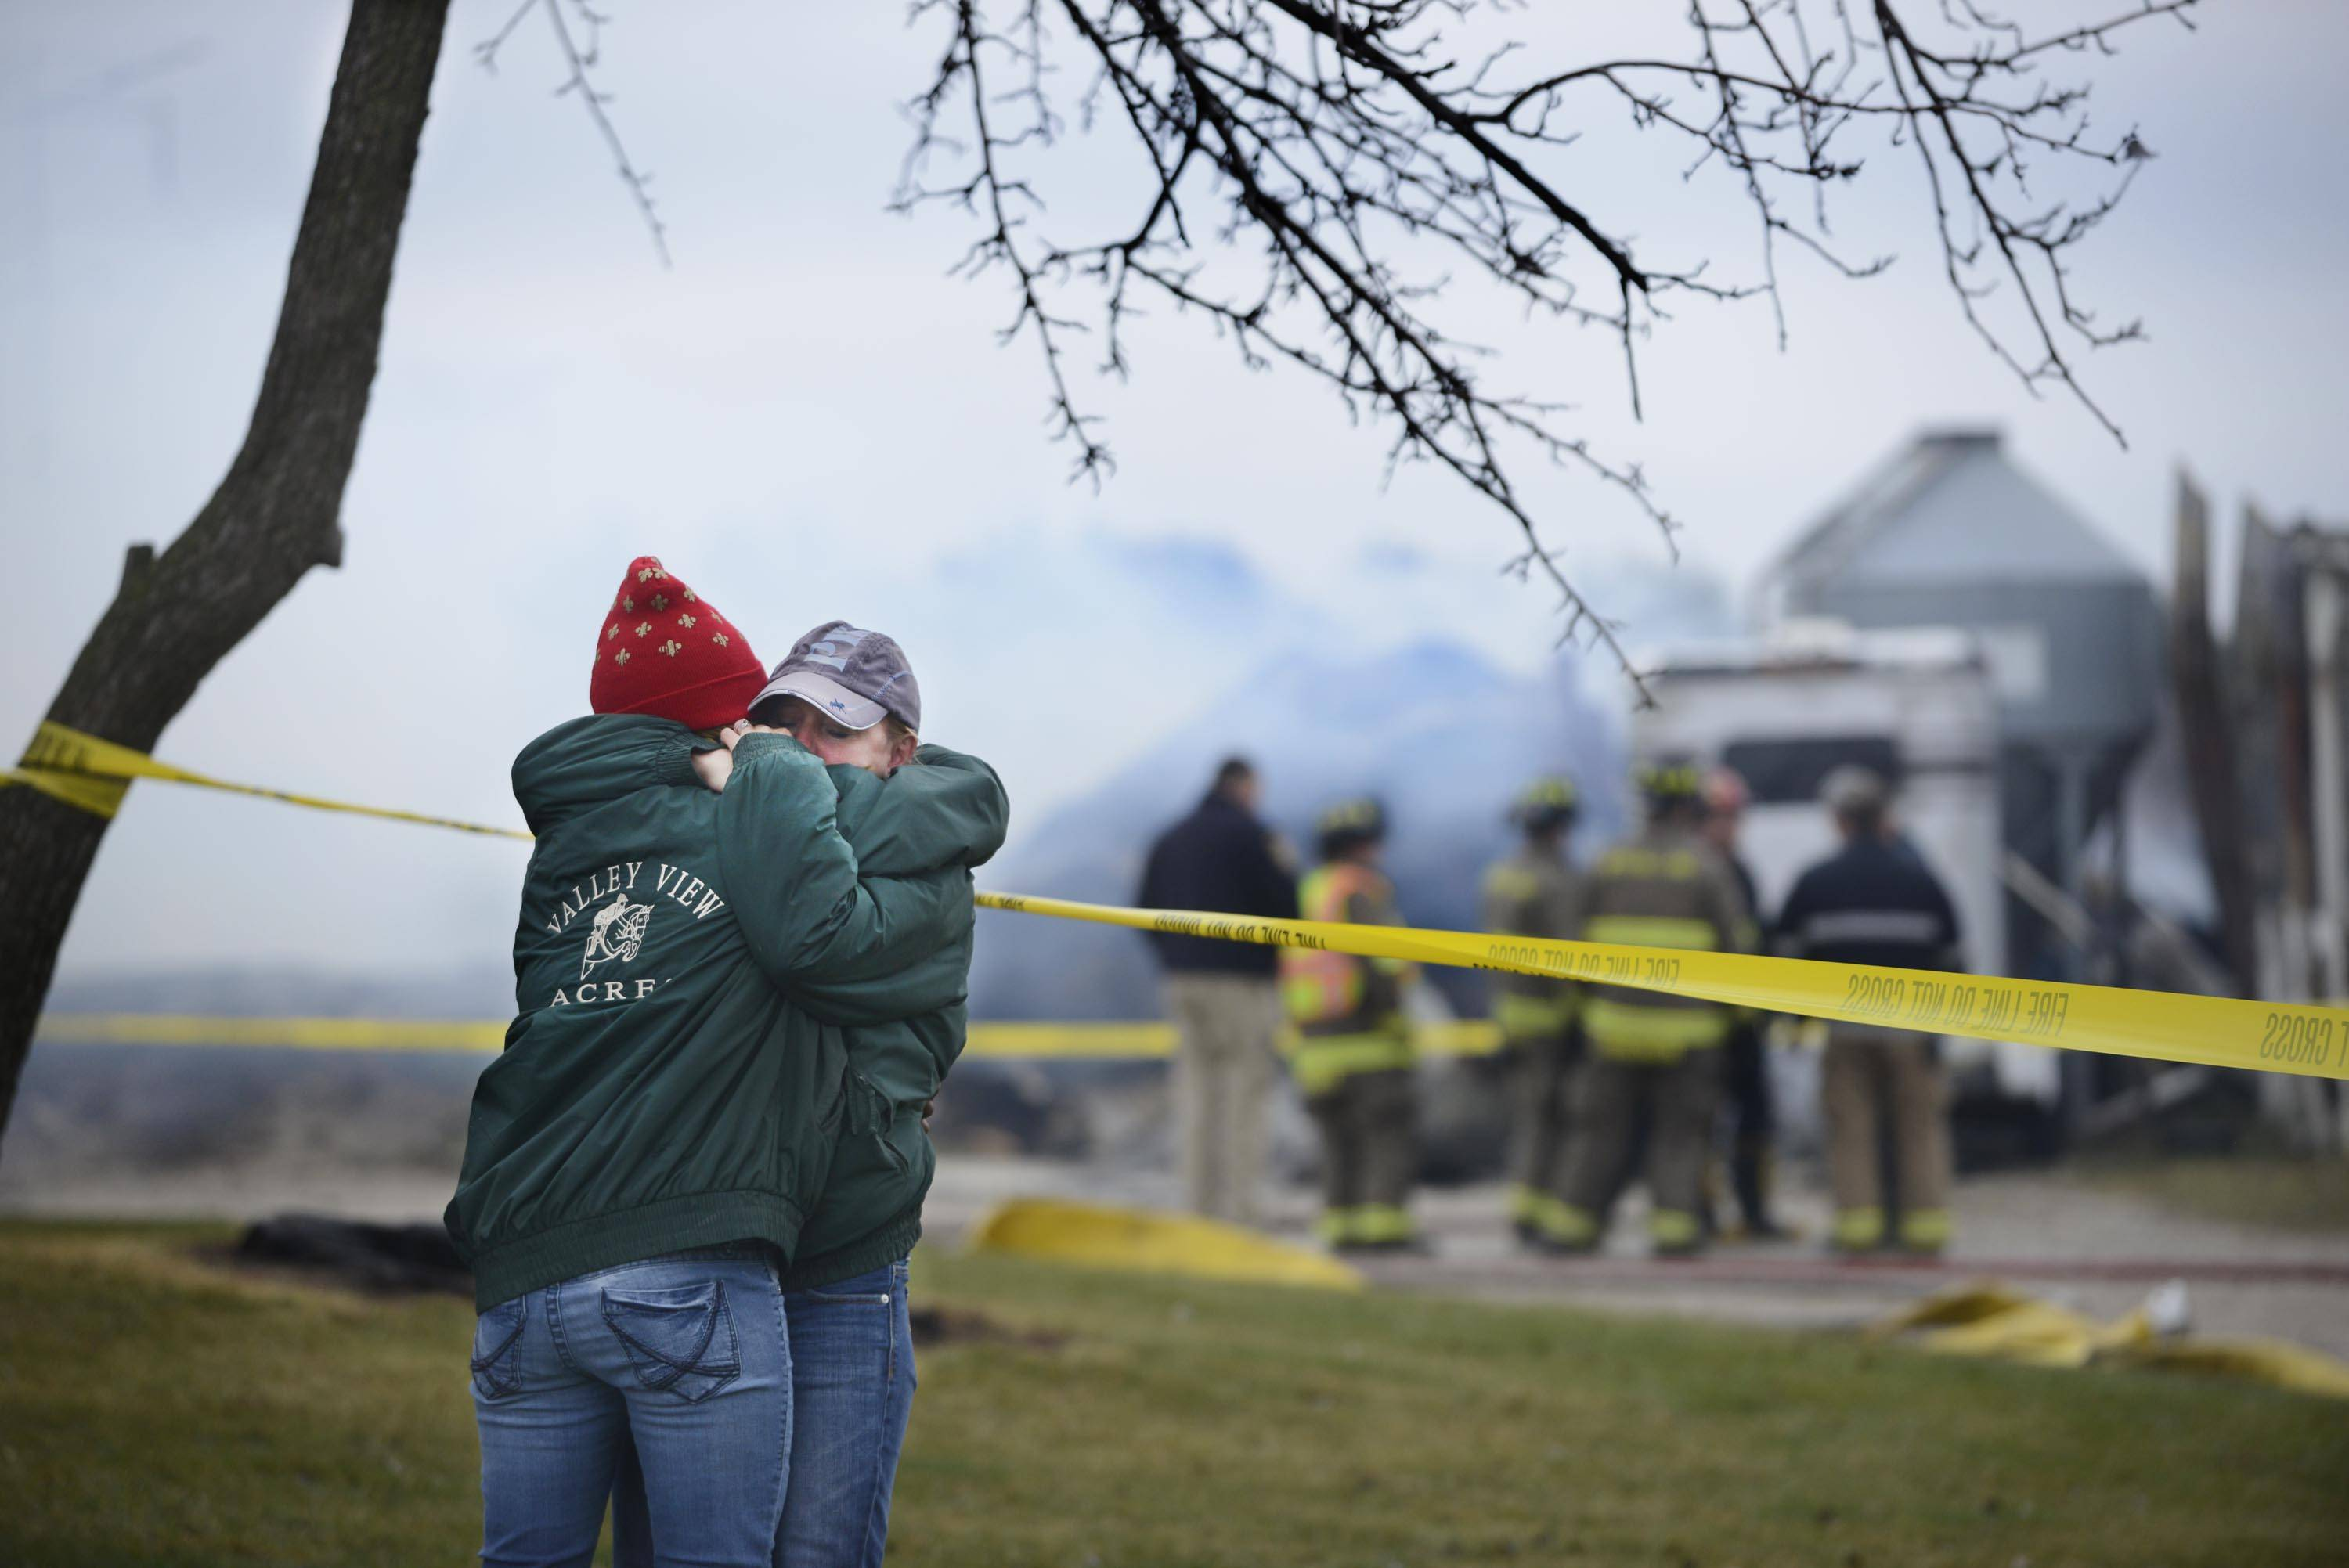 Owner Amber Bauman hugs a friend after a barn fire at Valley View Acres in unincorporated Crystal Lake killed 32 horses.